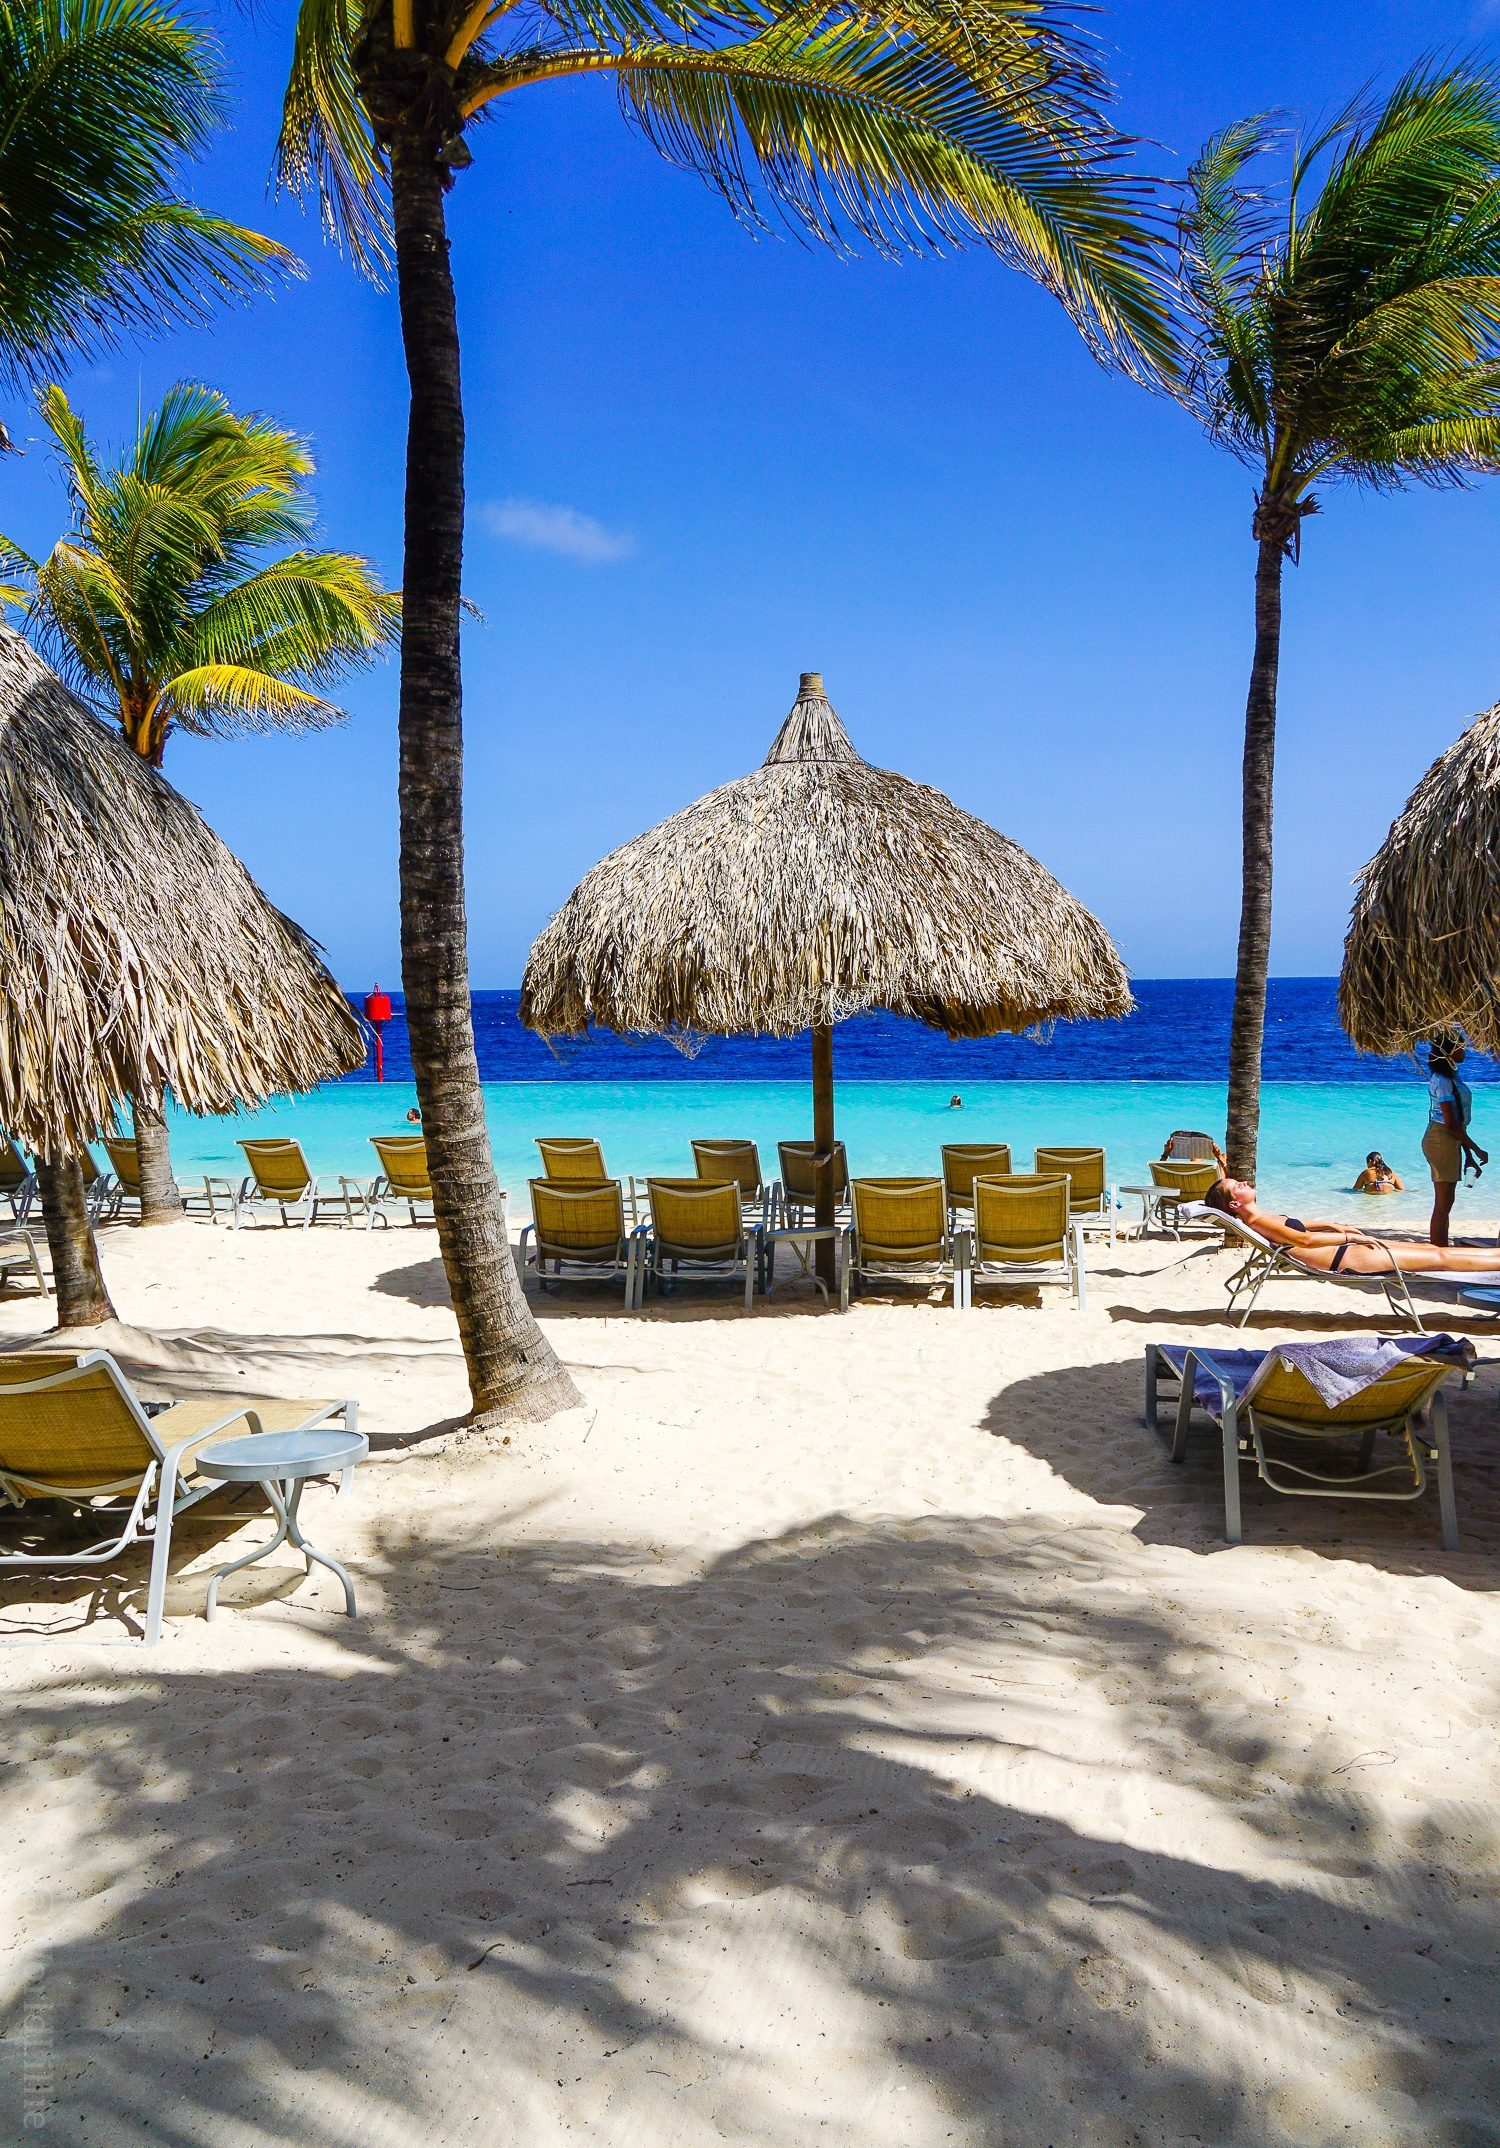 Curacao is an island in the Caribbean that is perfect for vacation travel. Where to stay in Willemstad? Check out this hotel resort with an infinity pool beach!